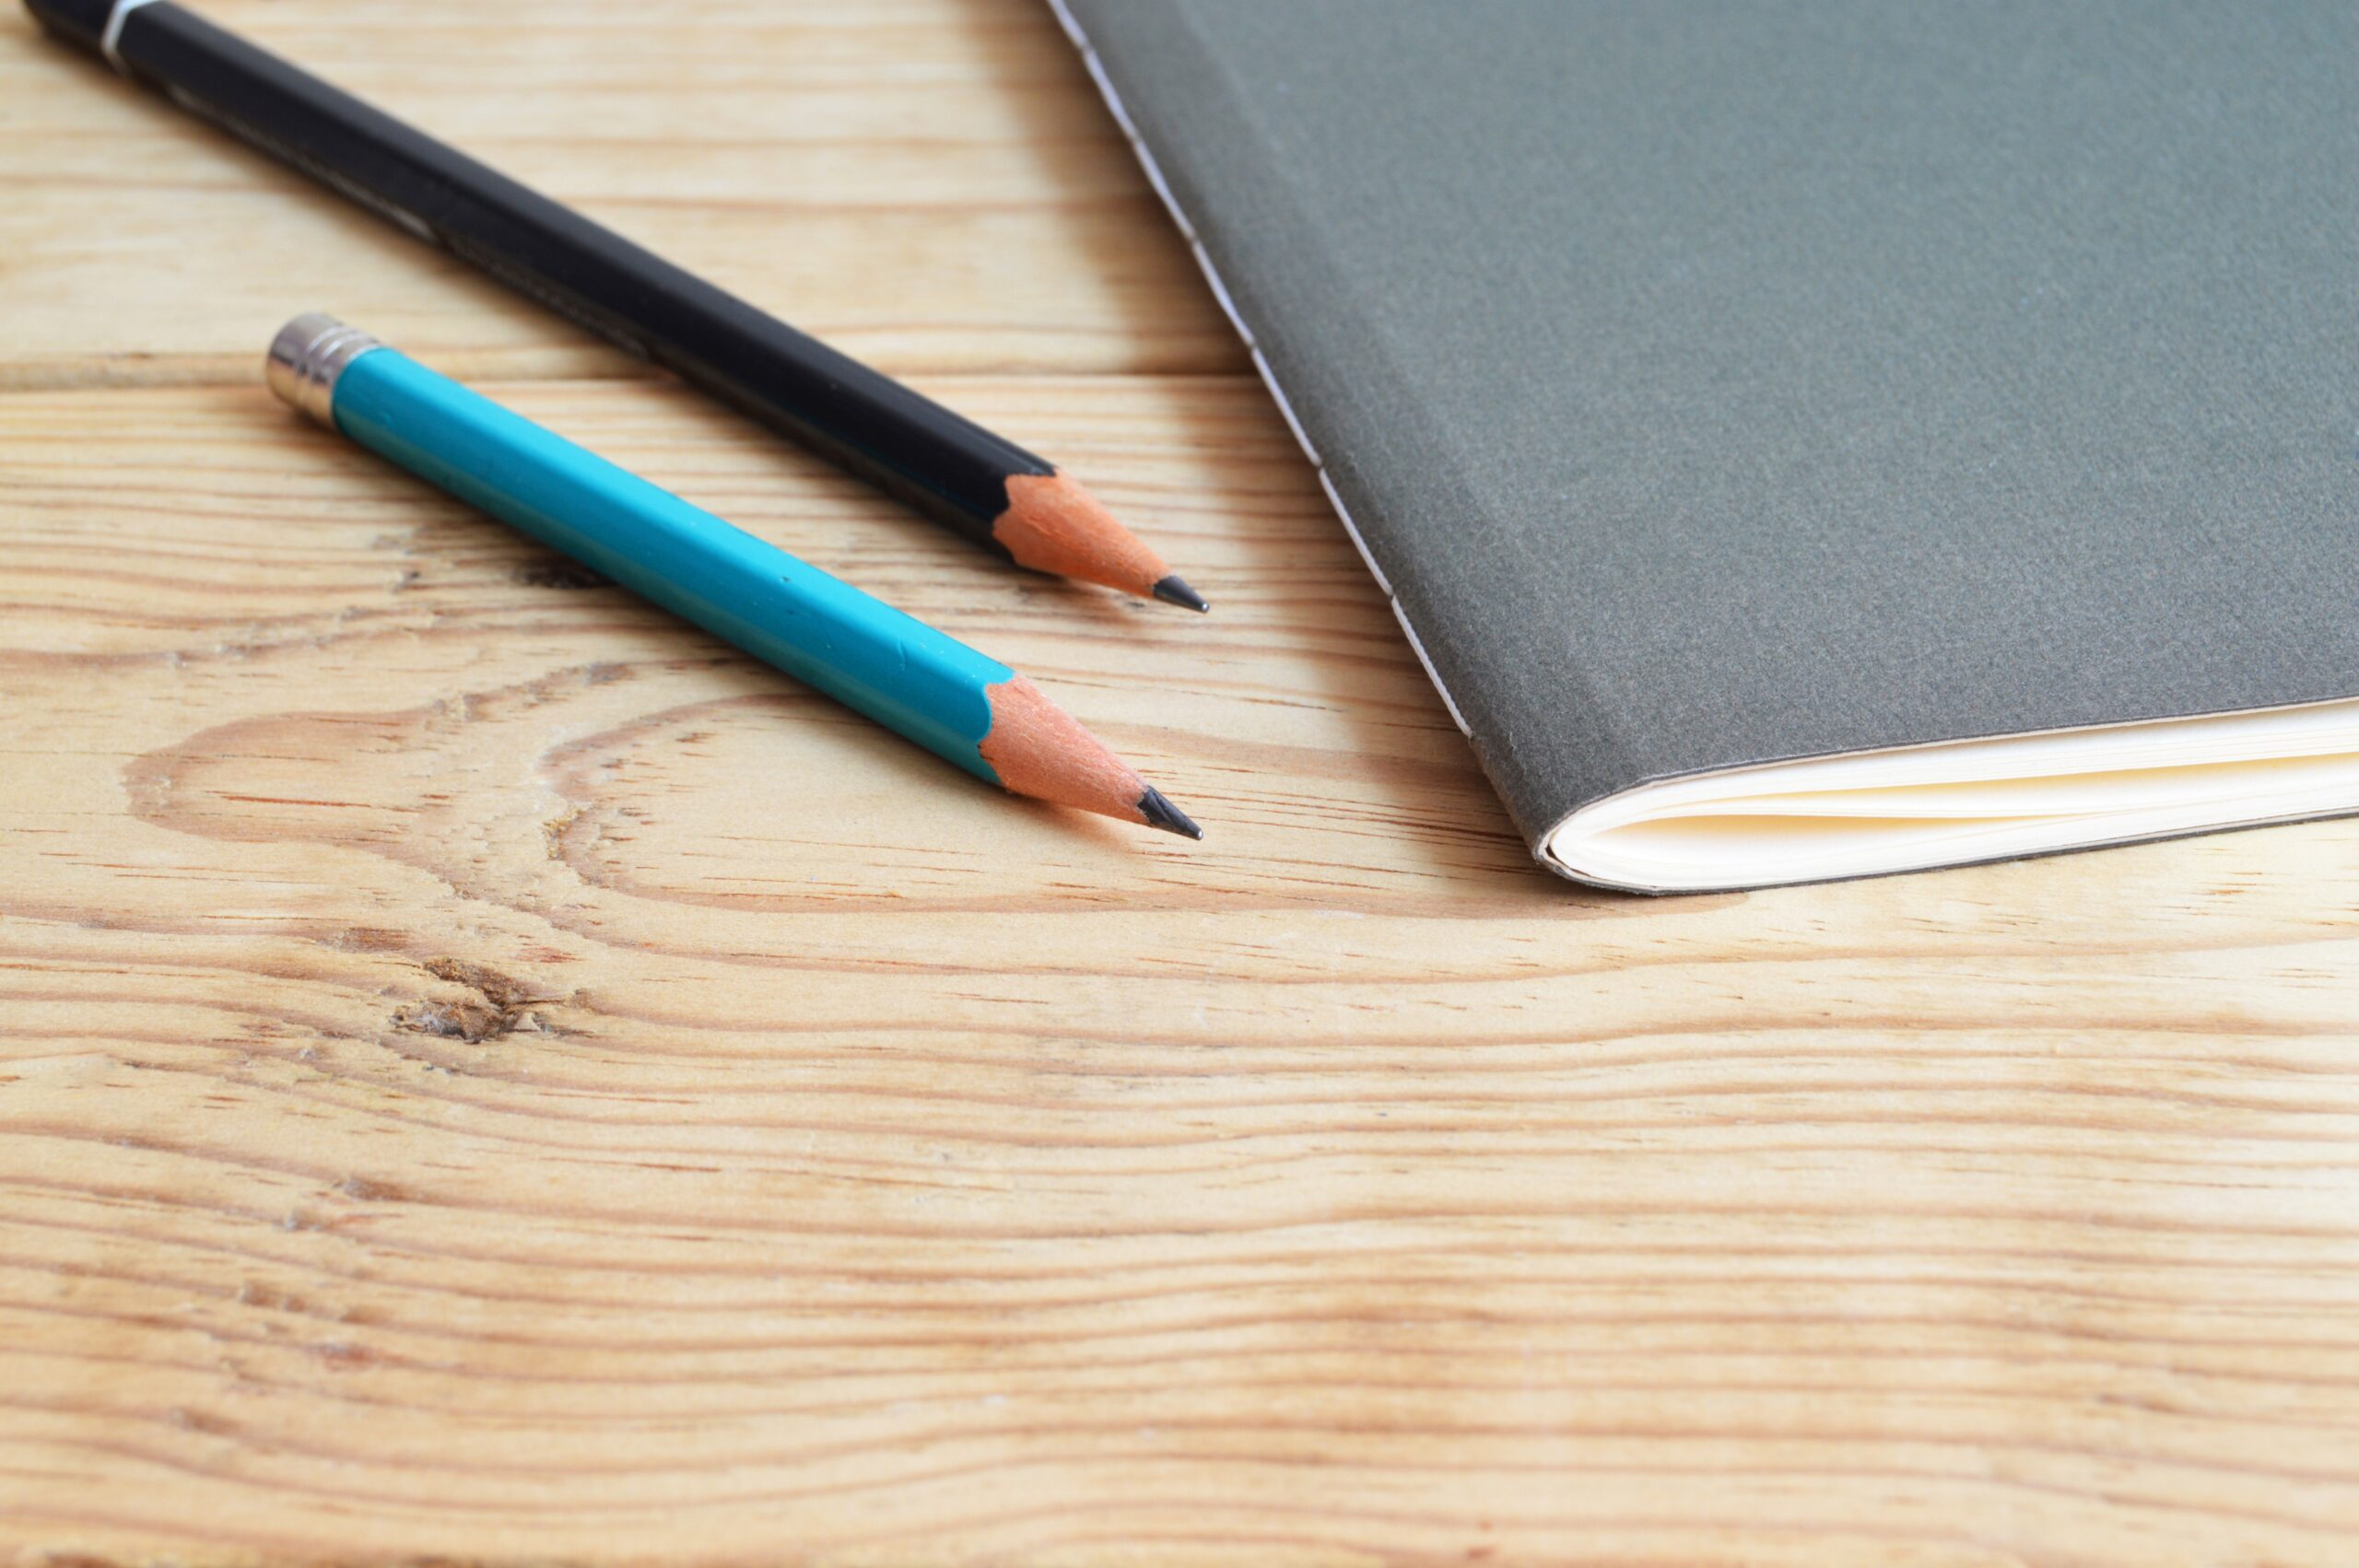 Black notebook with 2 pencils on wooden surface